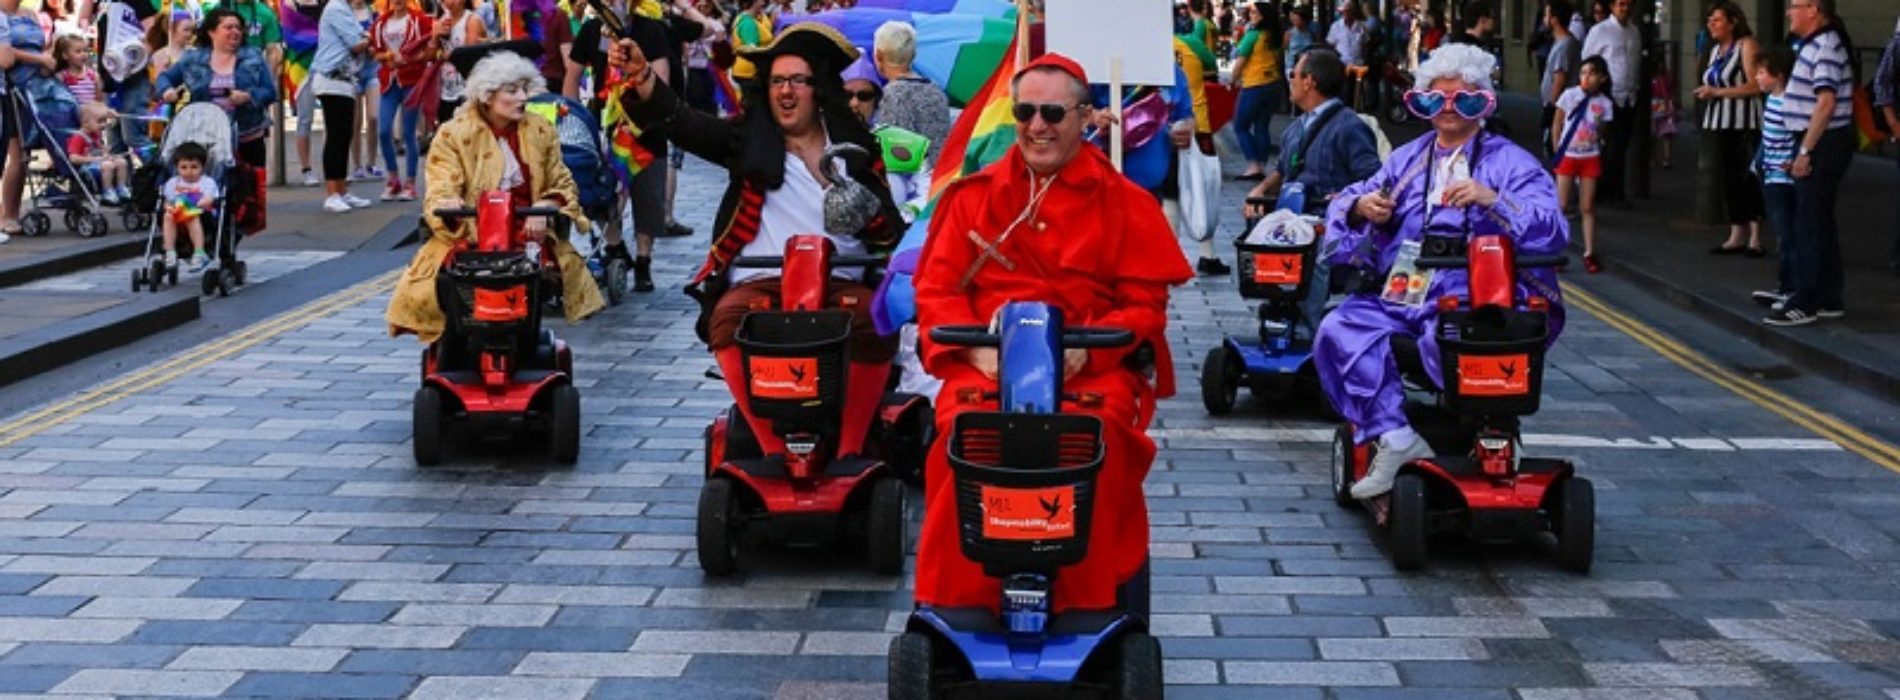 Gay and disabled: I'm proud of who I am